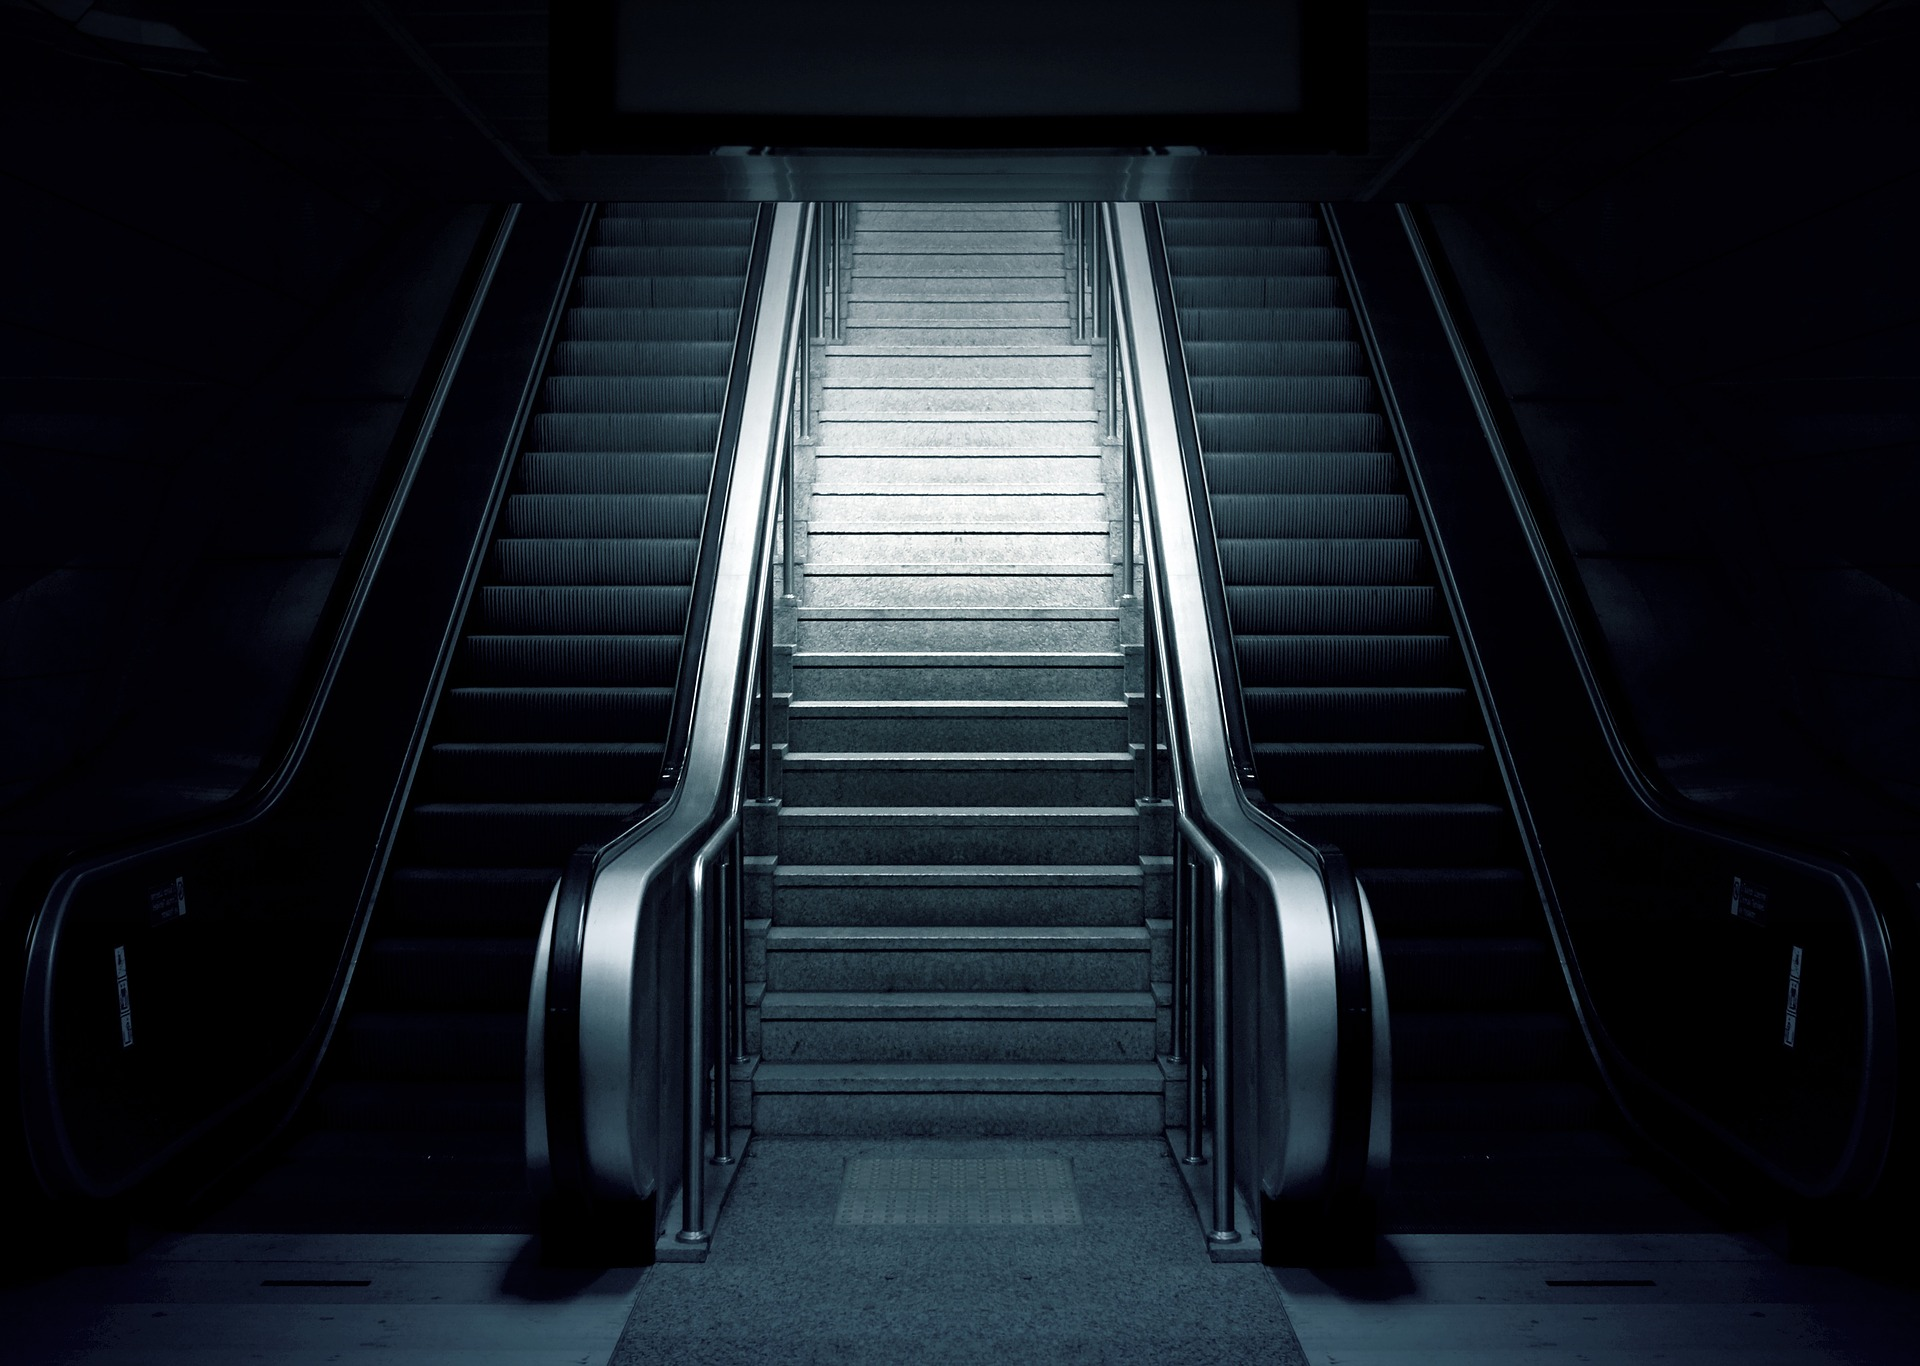 escalator-769790_1920.jpg